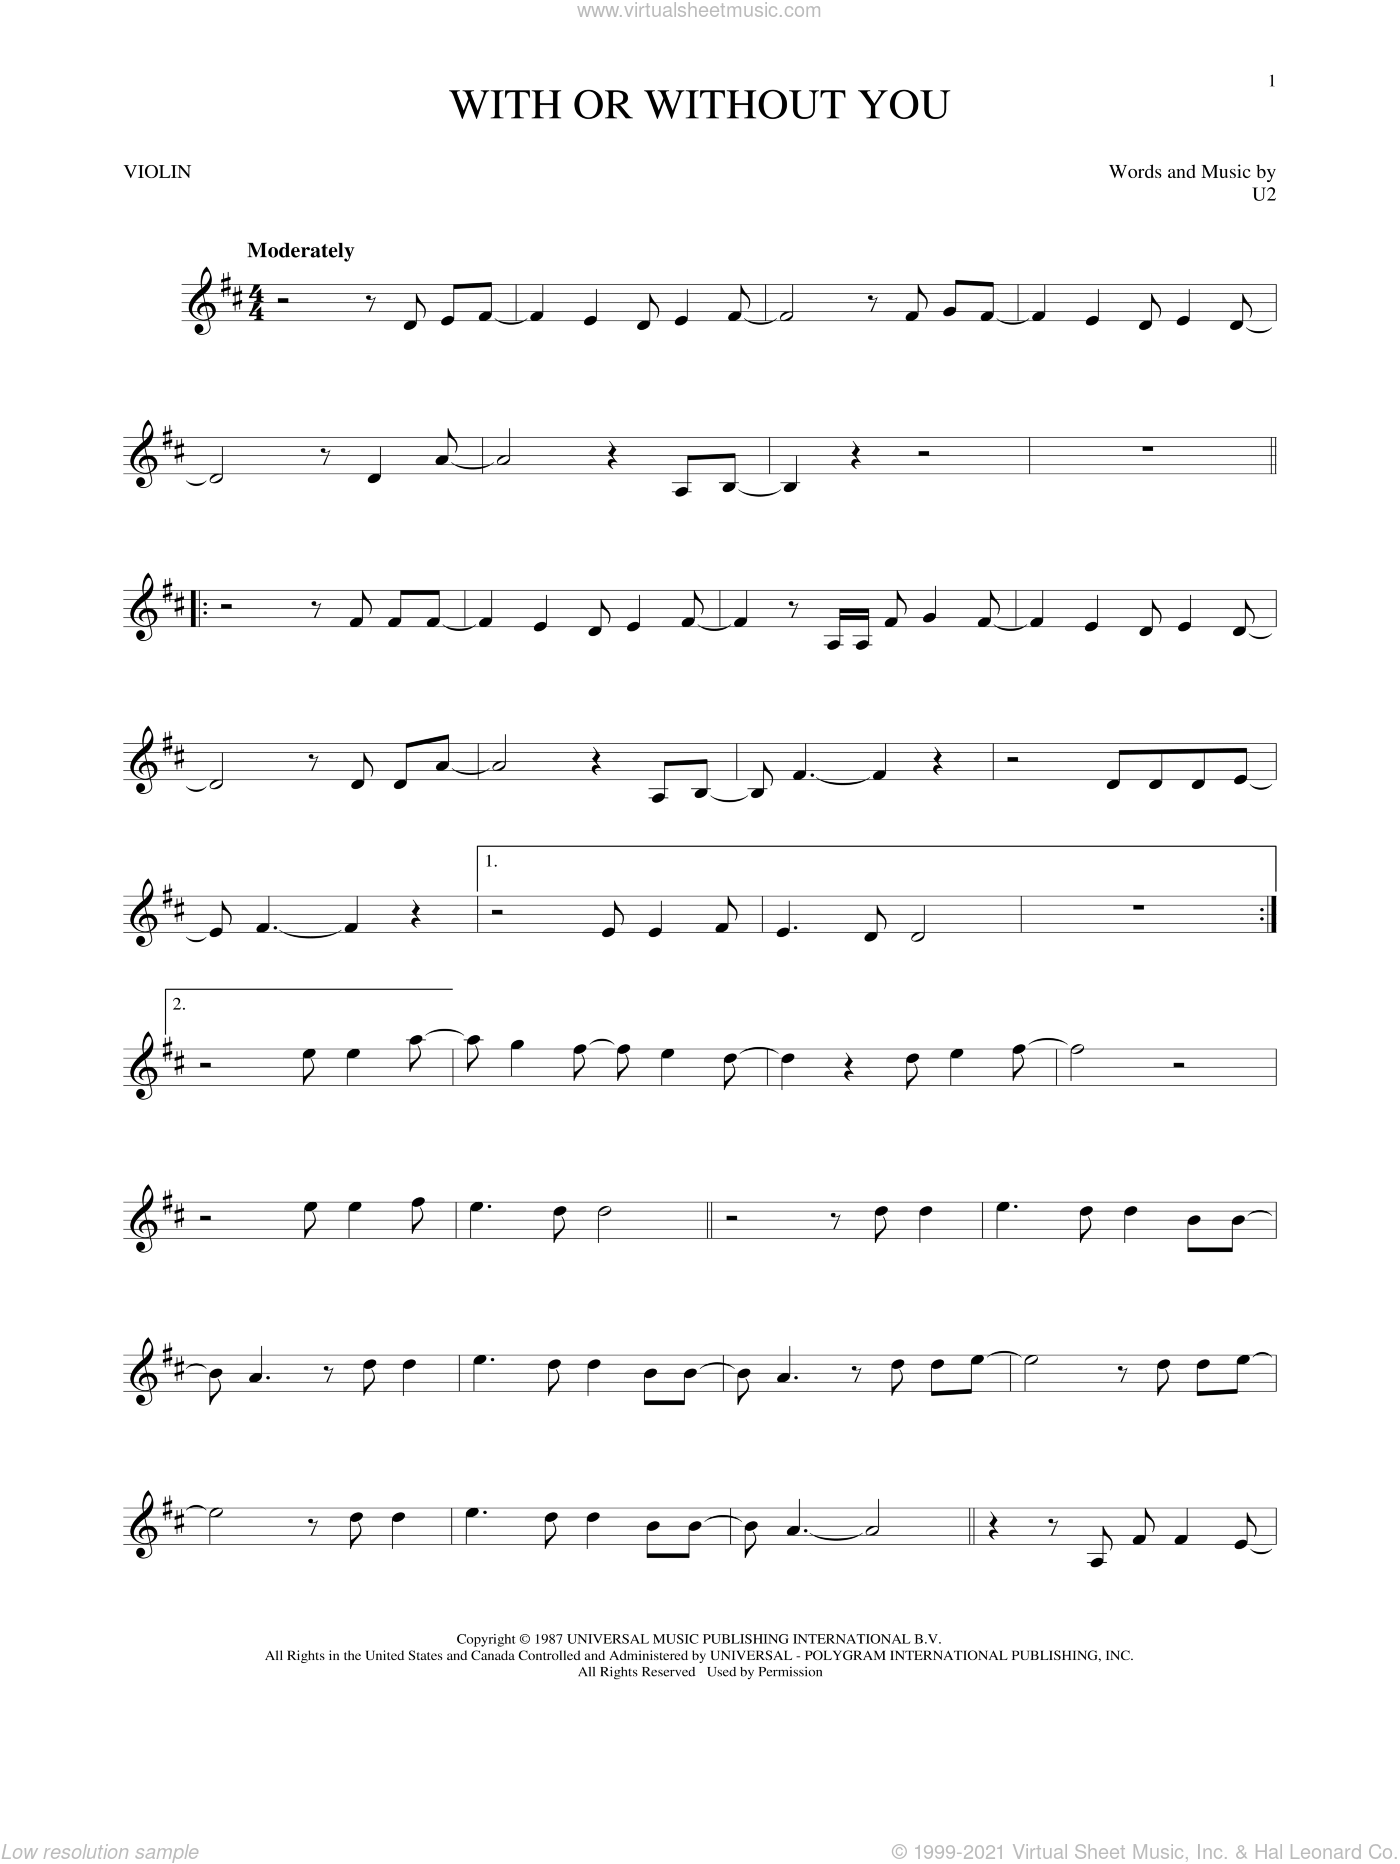 With Or Without You sheet music for violin solo by U2, intermediate skill level